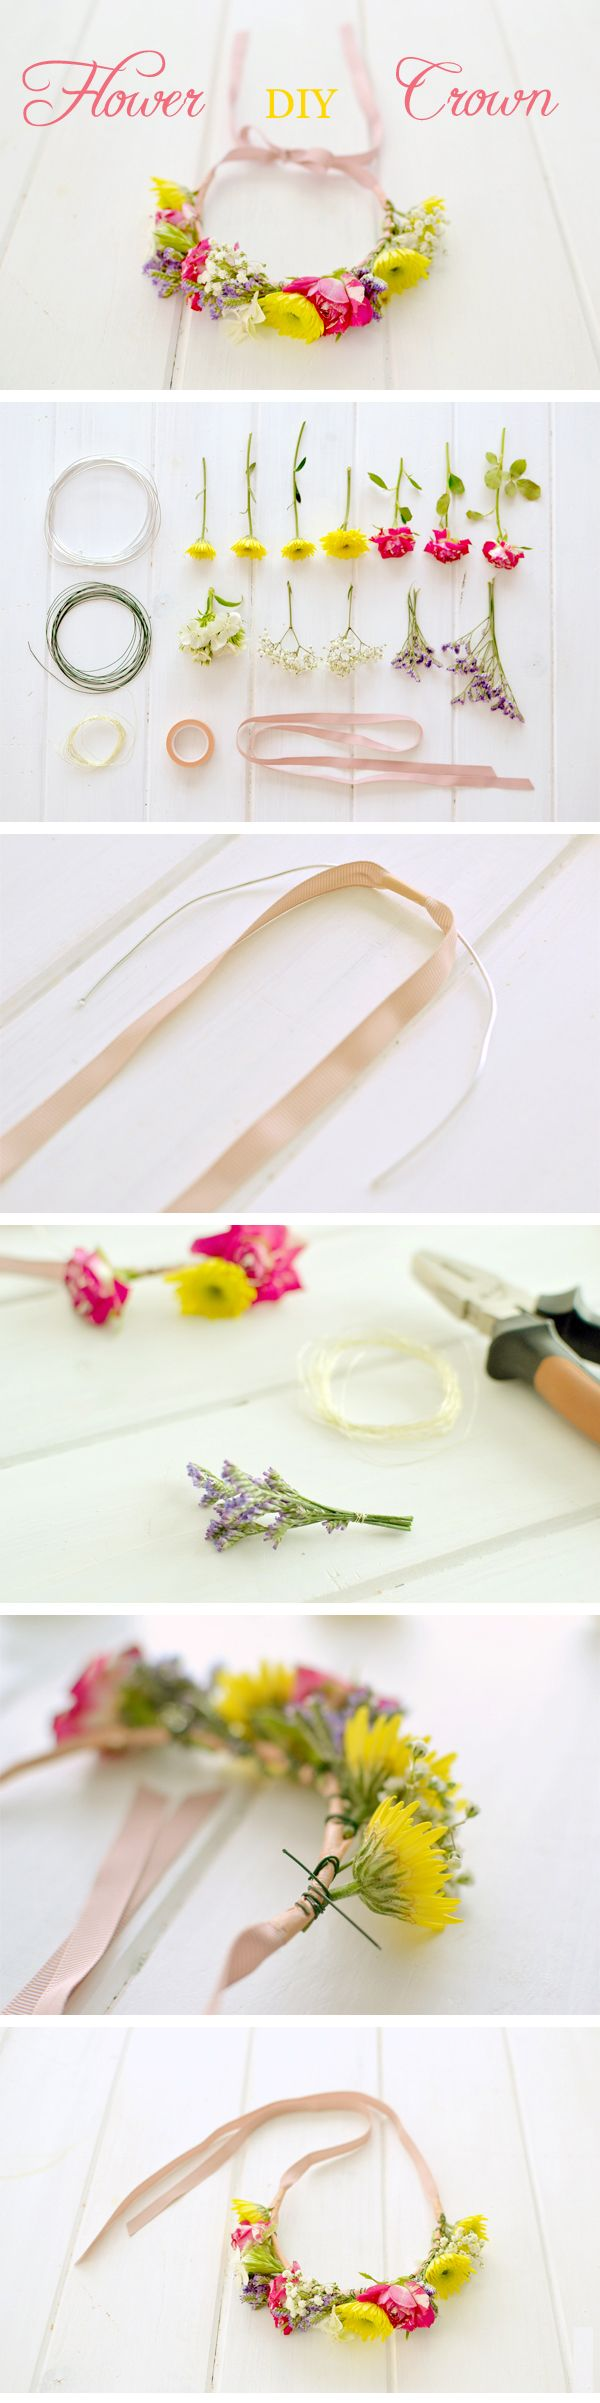 DIY: Flower crown - Corona de flores